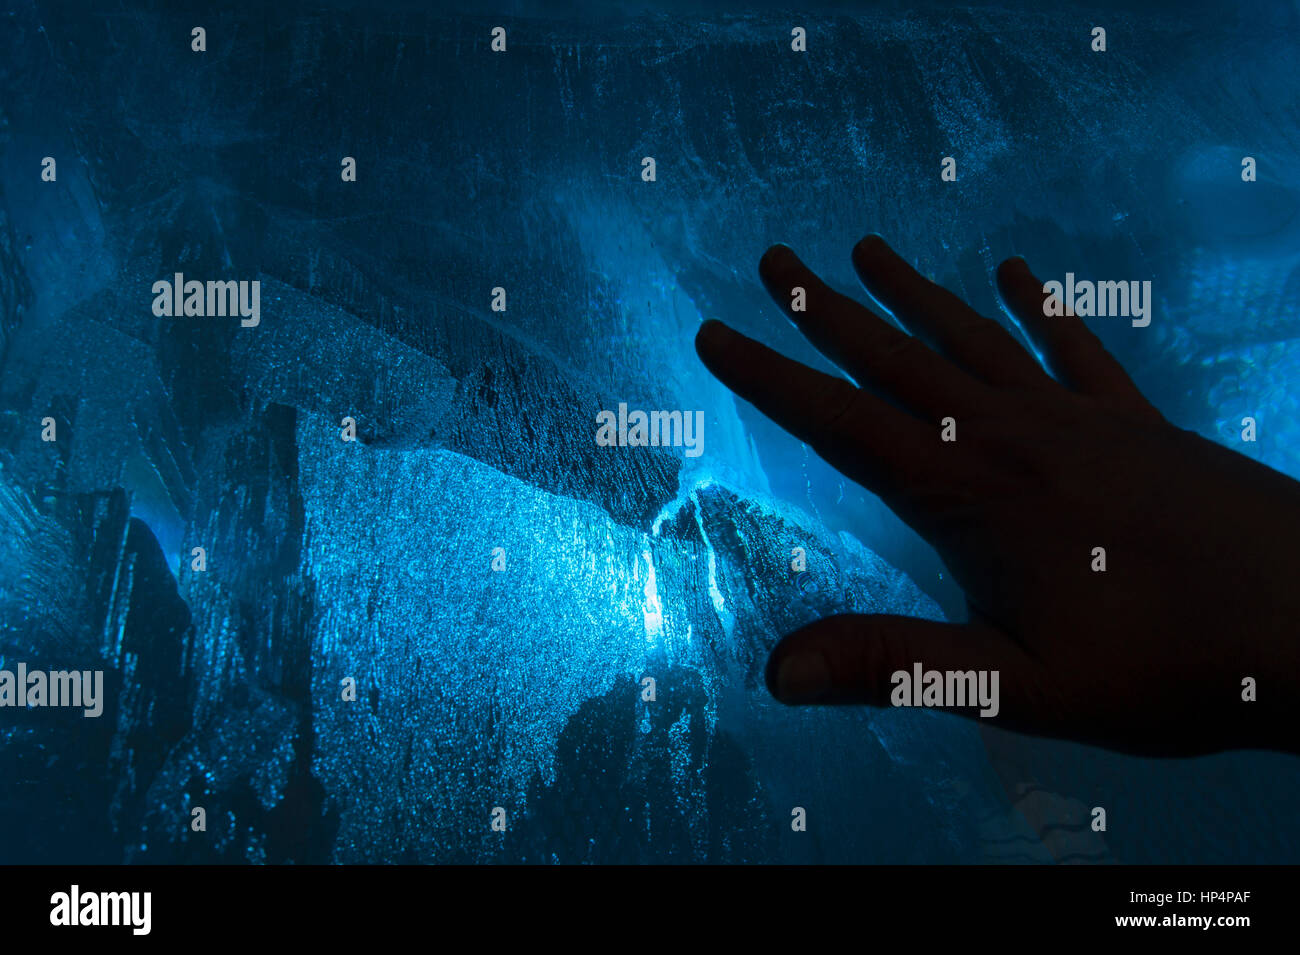 Hand on a cold blue ice block, the relationship between humans and nature, between people and natural phenomena, - Stock Image